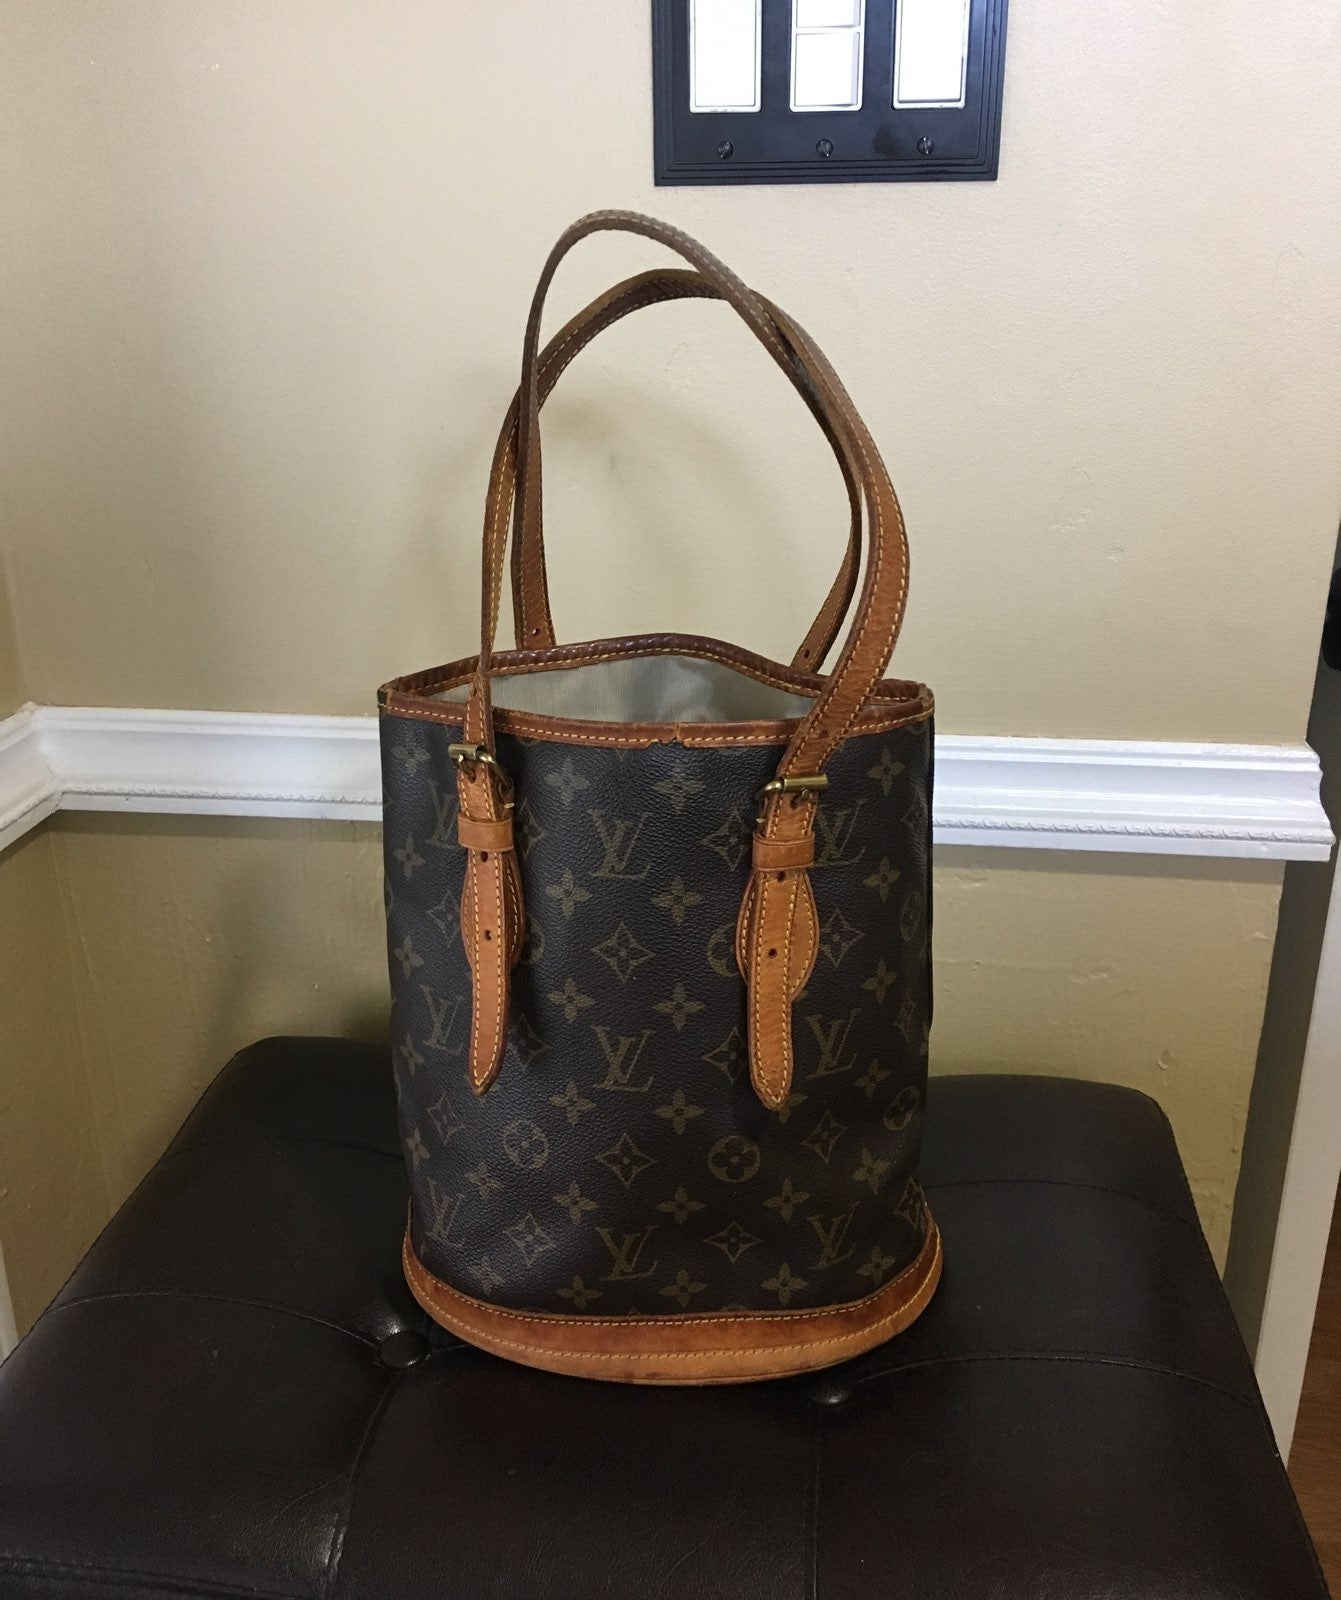 Authentic Louis Vuitton PM Bucket Handba